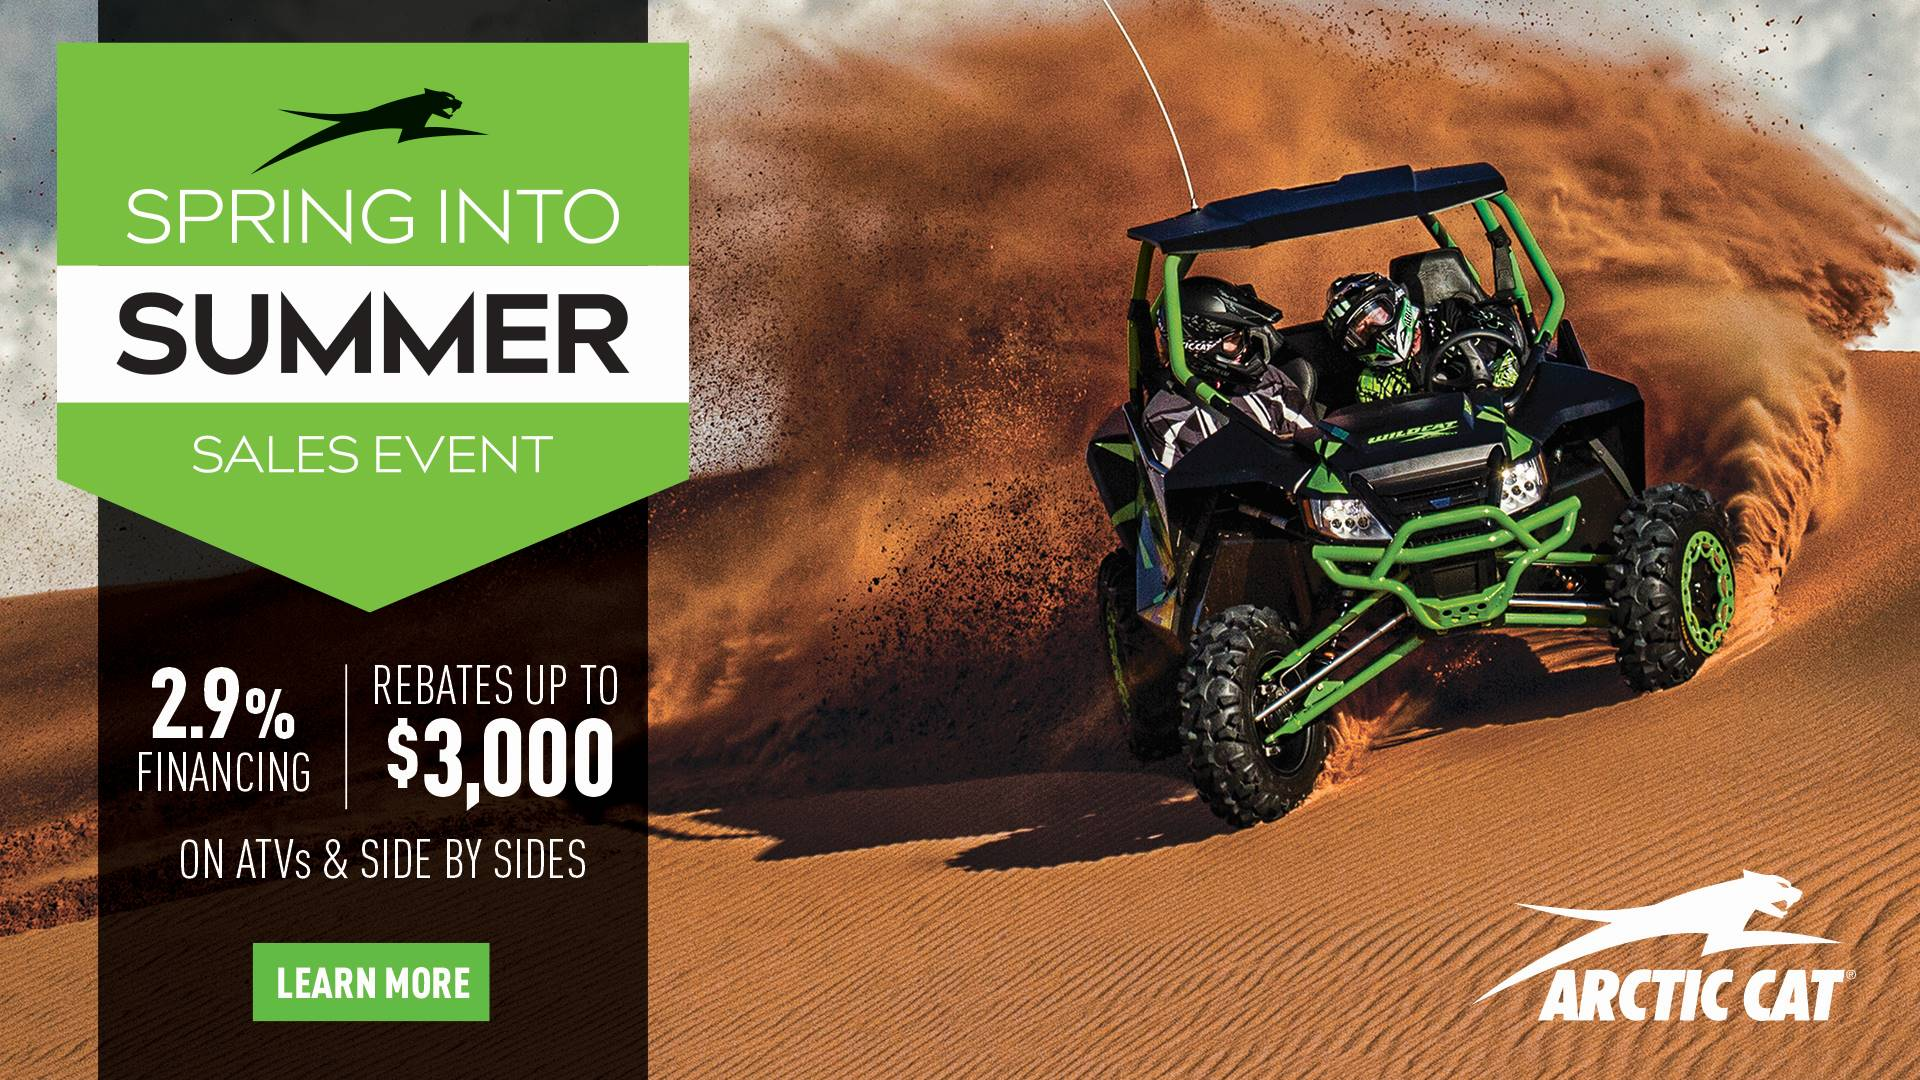 Arctic Cat - Spring Into Summer Sales Event - ATVs - MY2015-2016